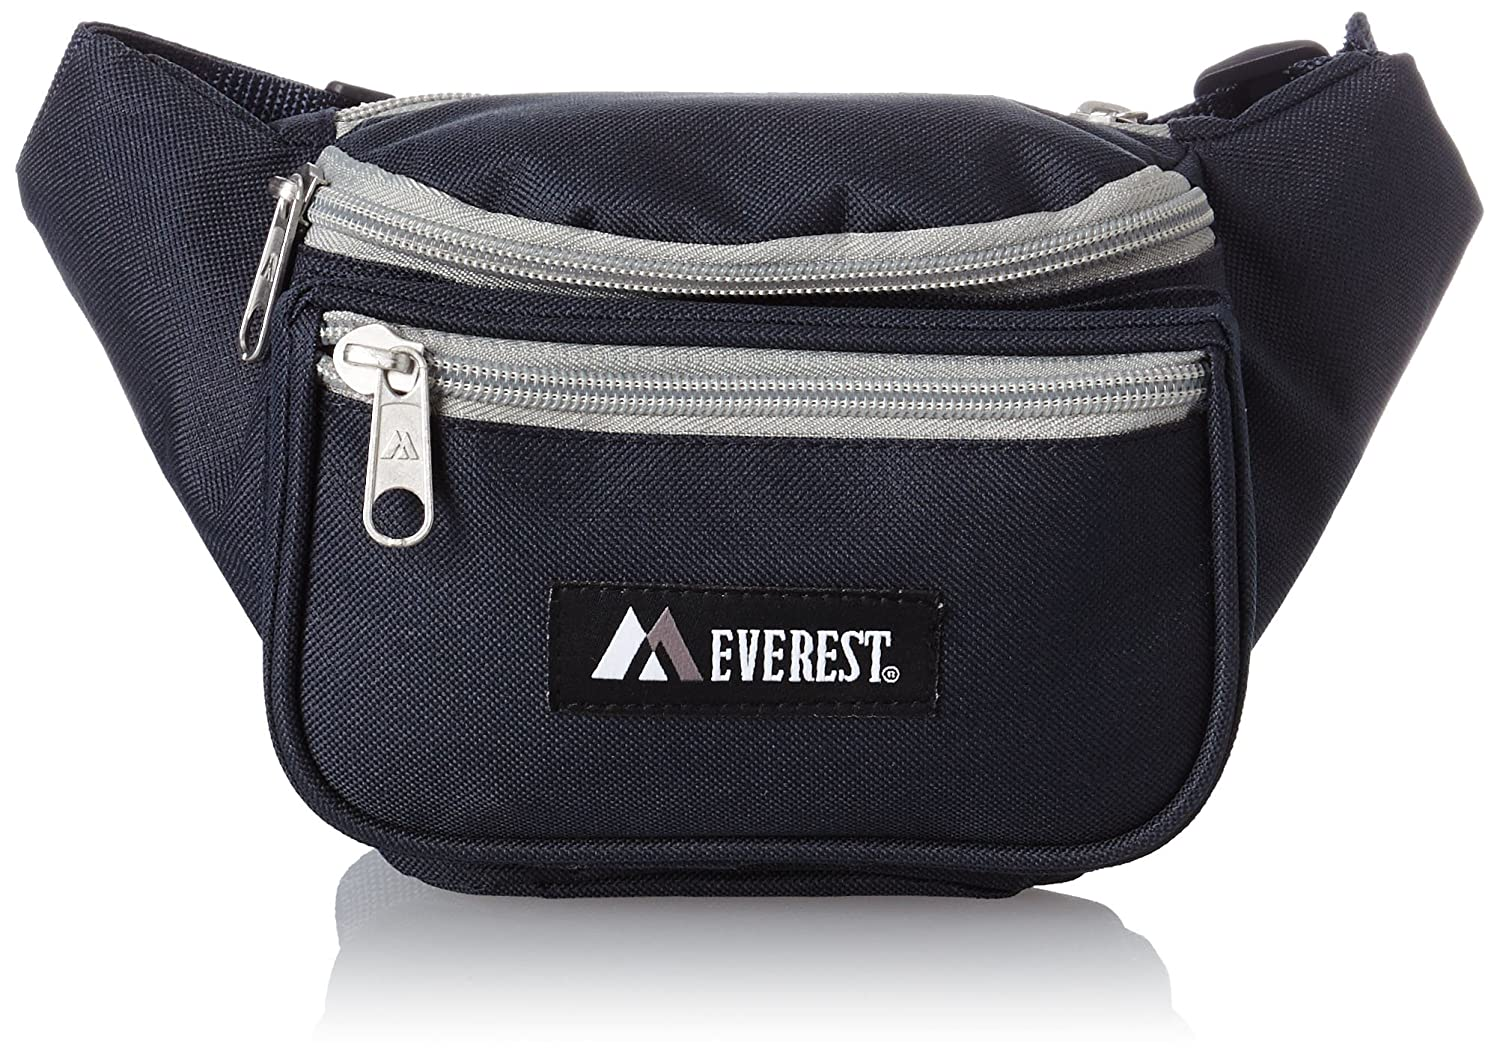 9161c08f6f95 Everest Signature Waist Pack - Standard, Navy/Gray, One Size